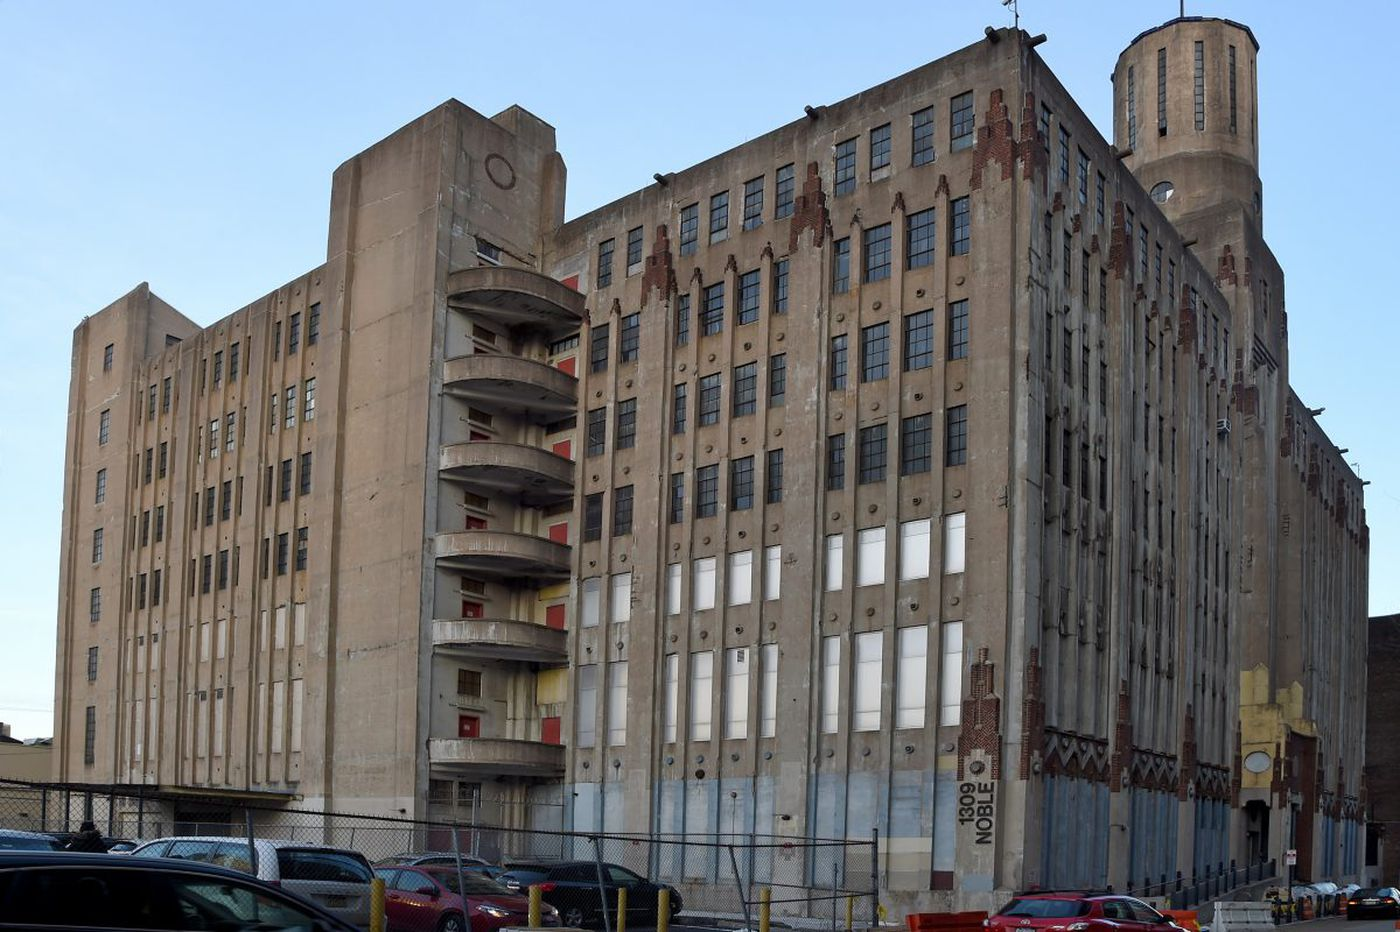 This gorgeous castle overlooking the Reading Viaduct park is still a functioning industrial building